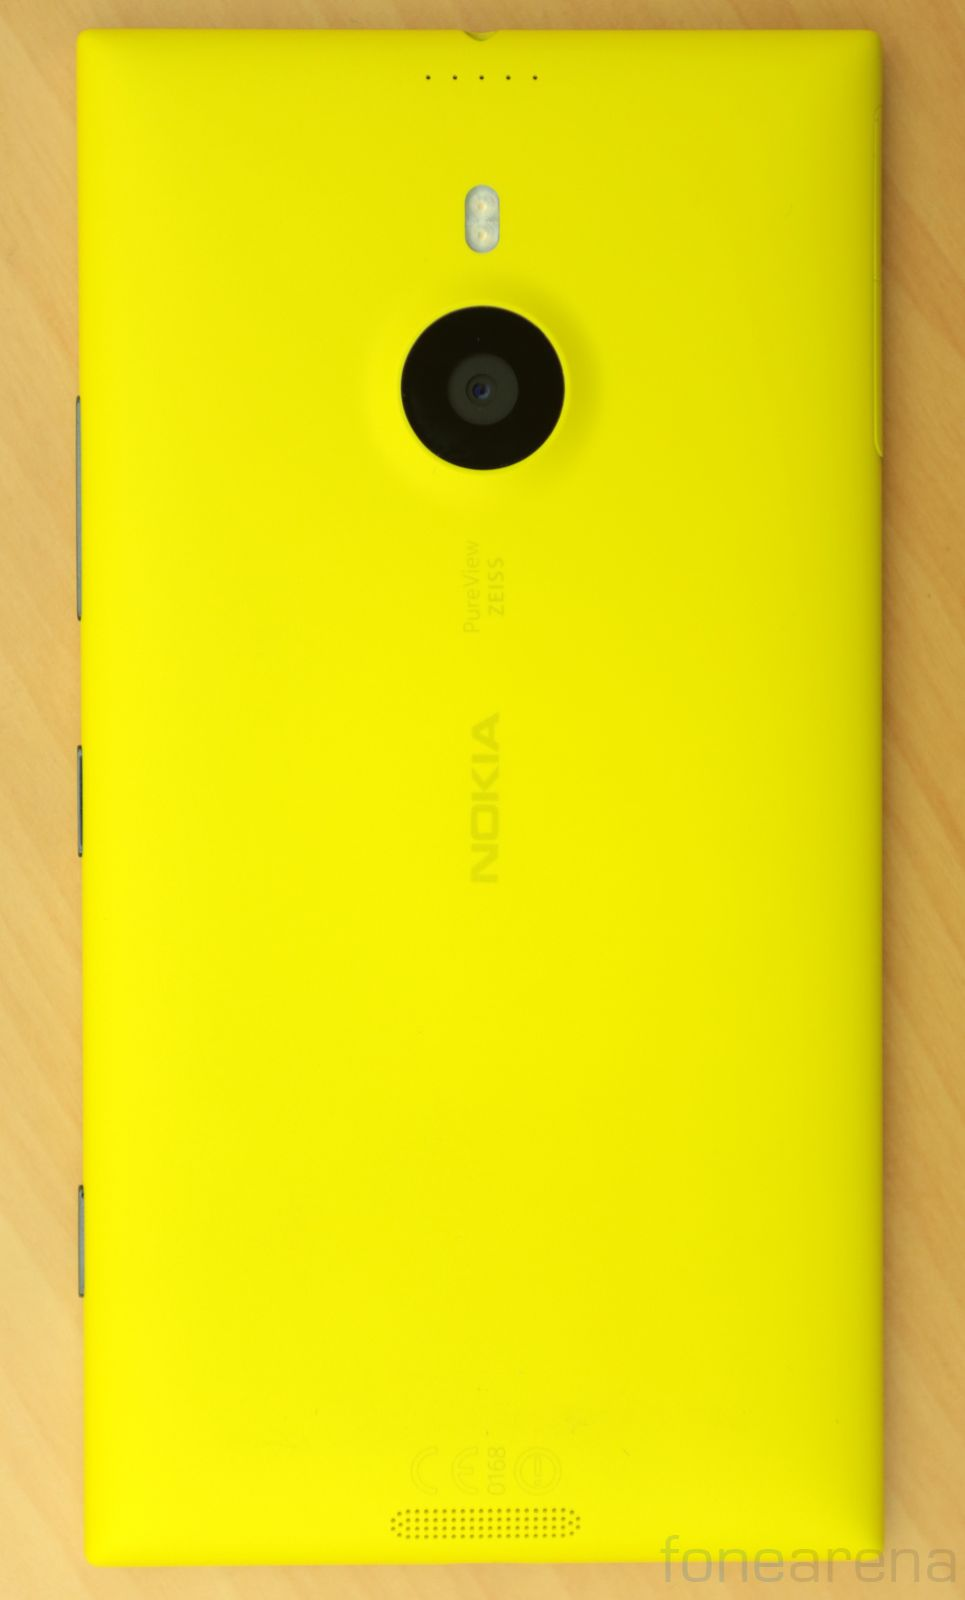 nokia-lumia-1520-review-14